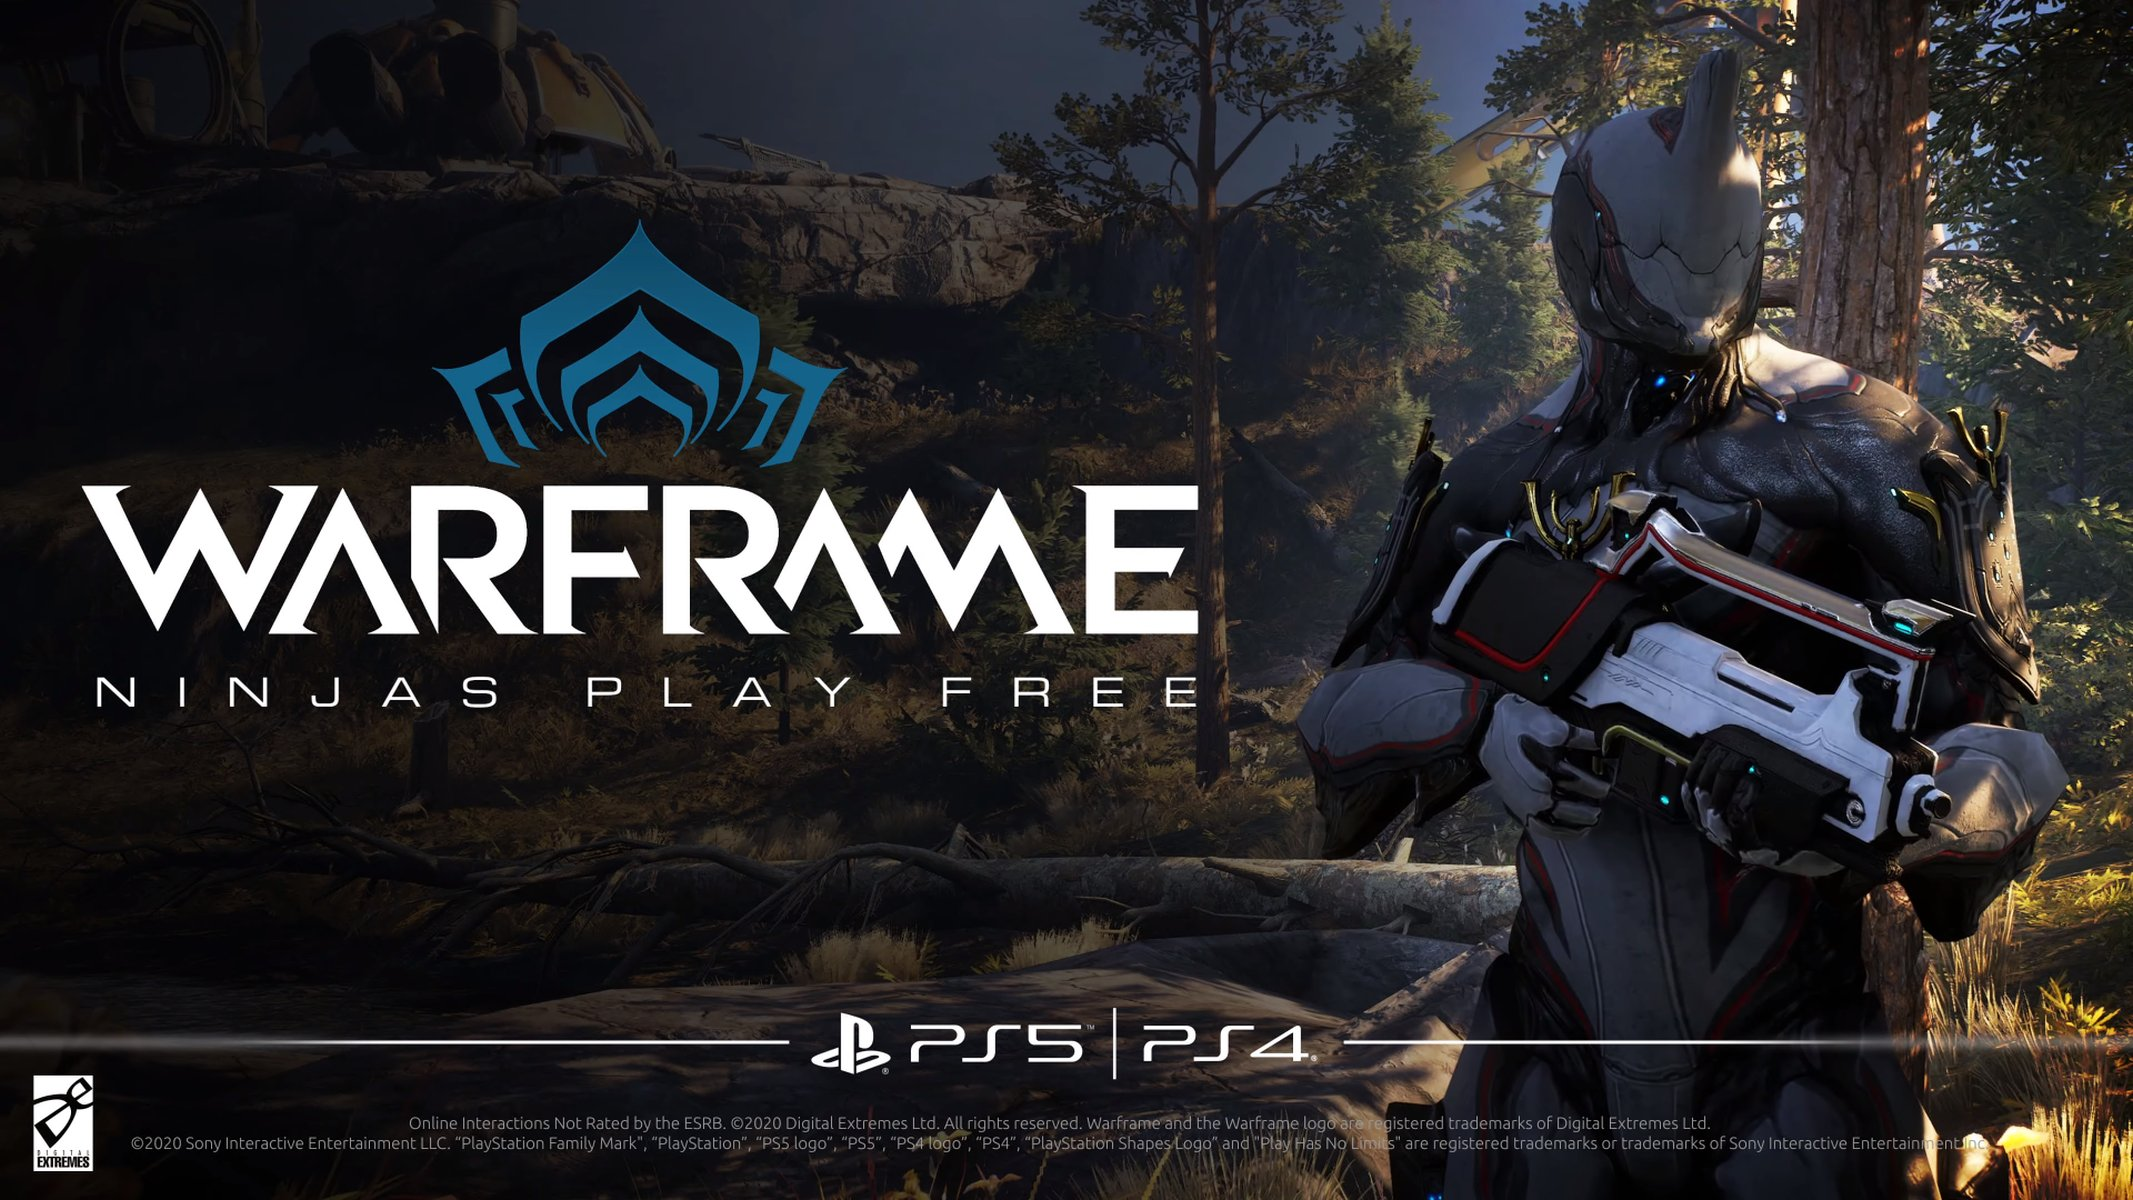 Warframe PS5 Trailer